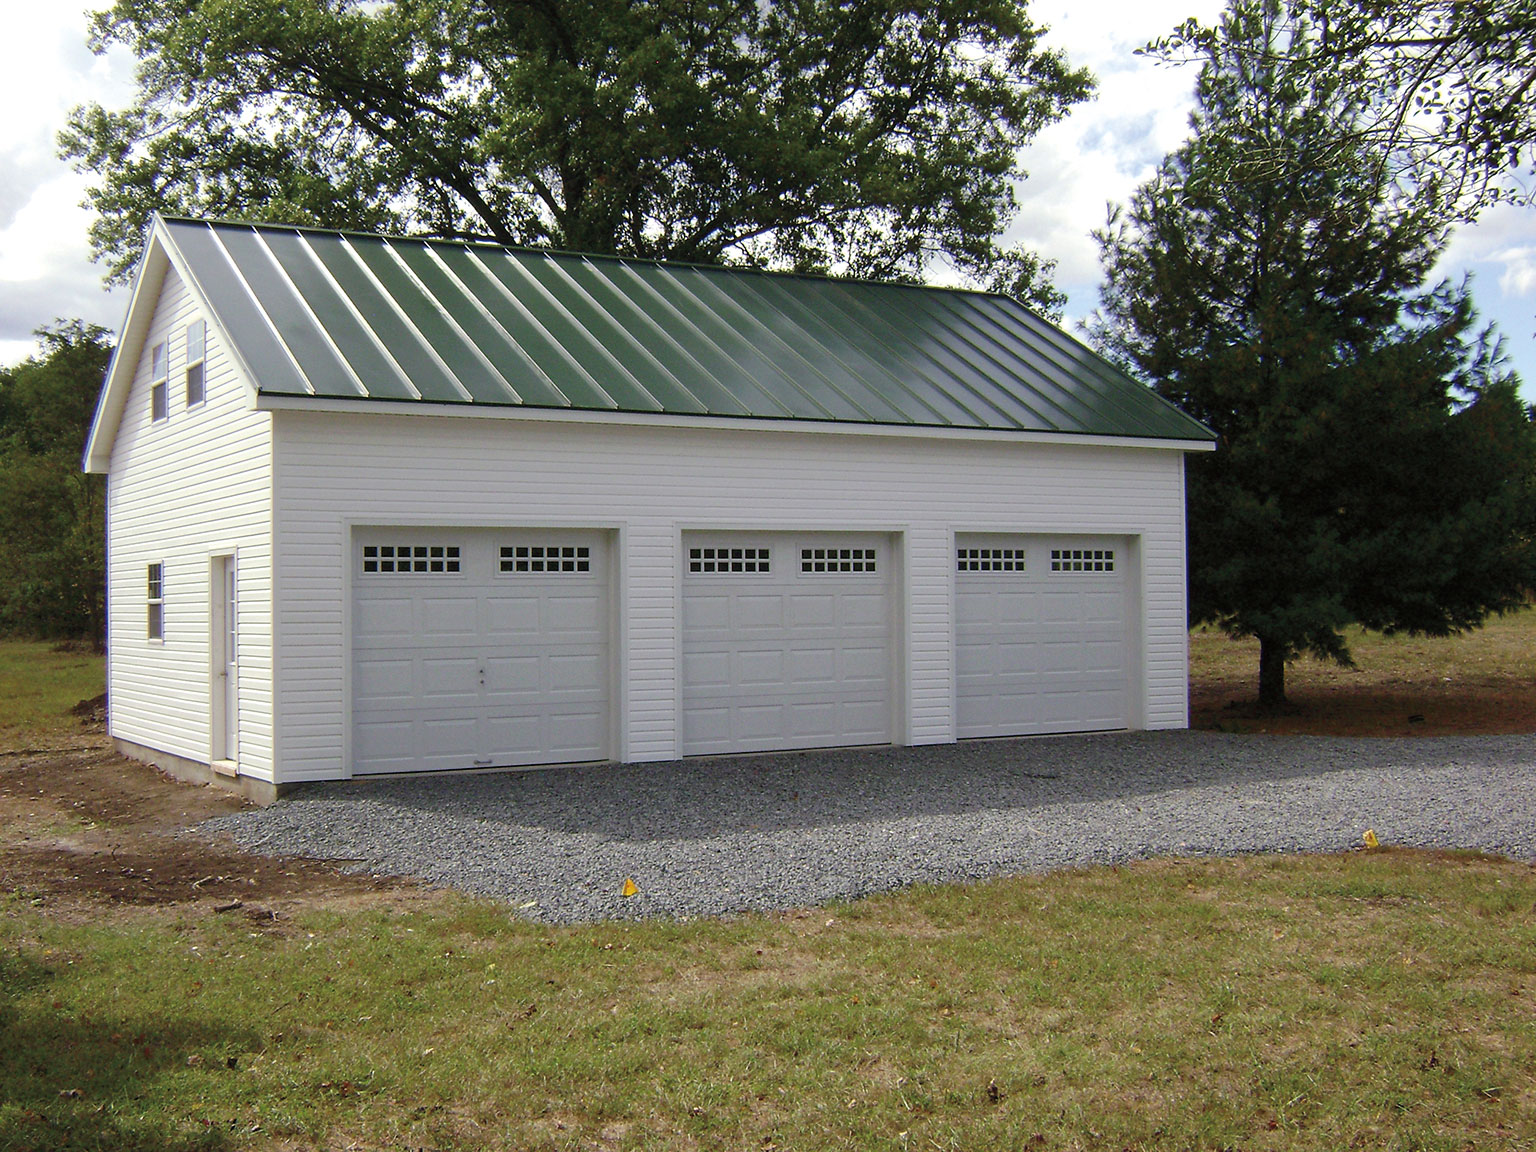 Built on site custom amish garages in oneonta ny amish 3 car metal garage kits